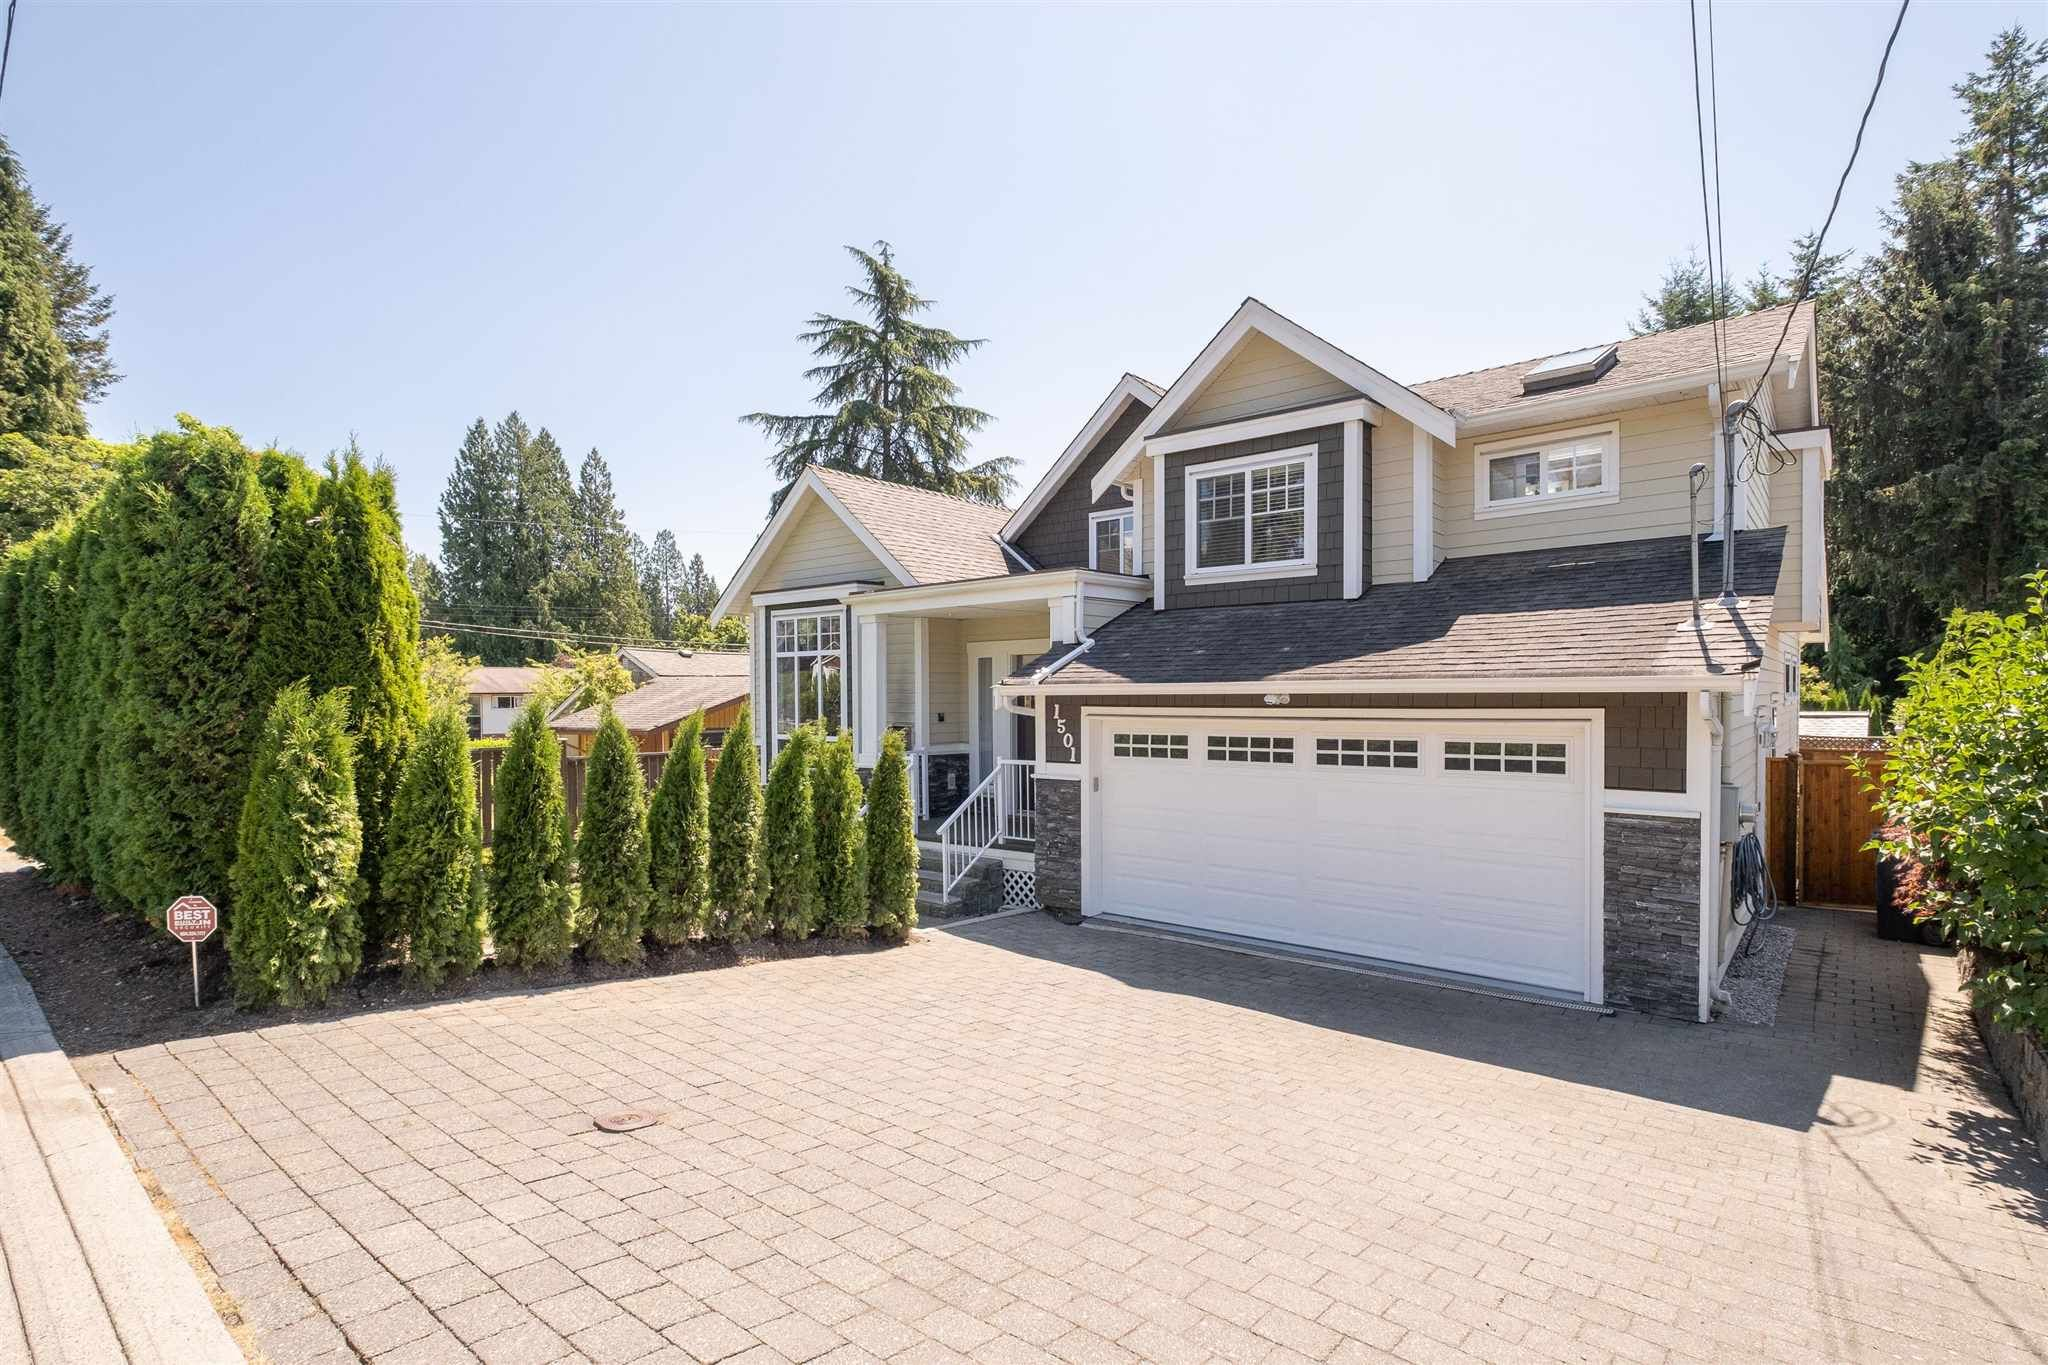 Main Photo: 1501 FREDERICK ROAD in North Vancouver: Lynn Valley House for sale : MLS®# R2603680